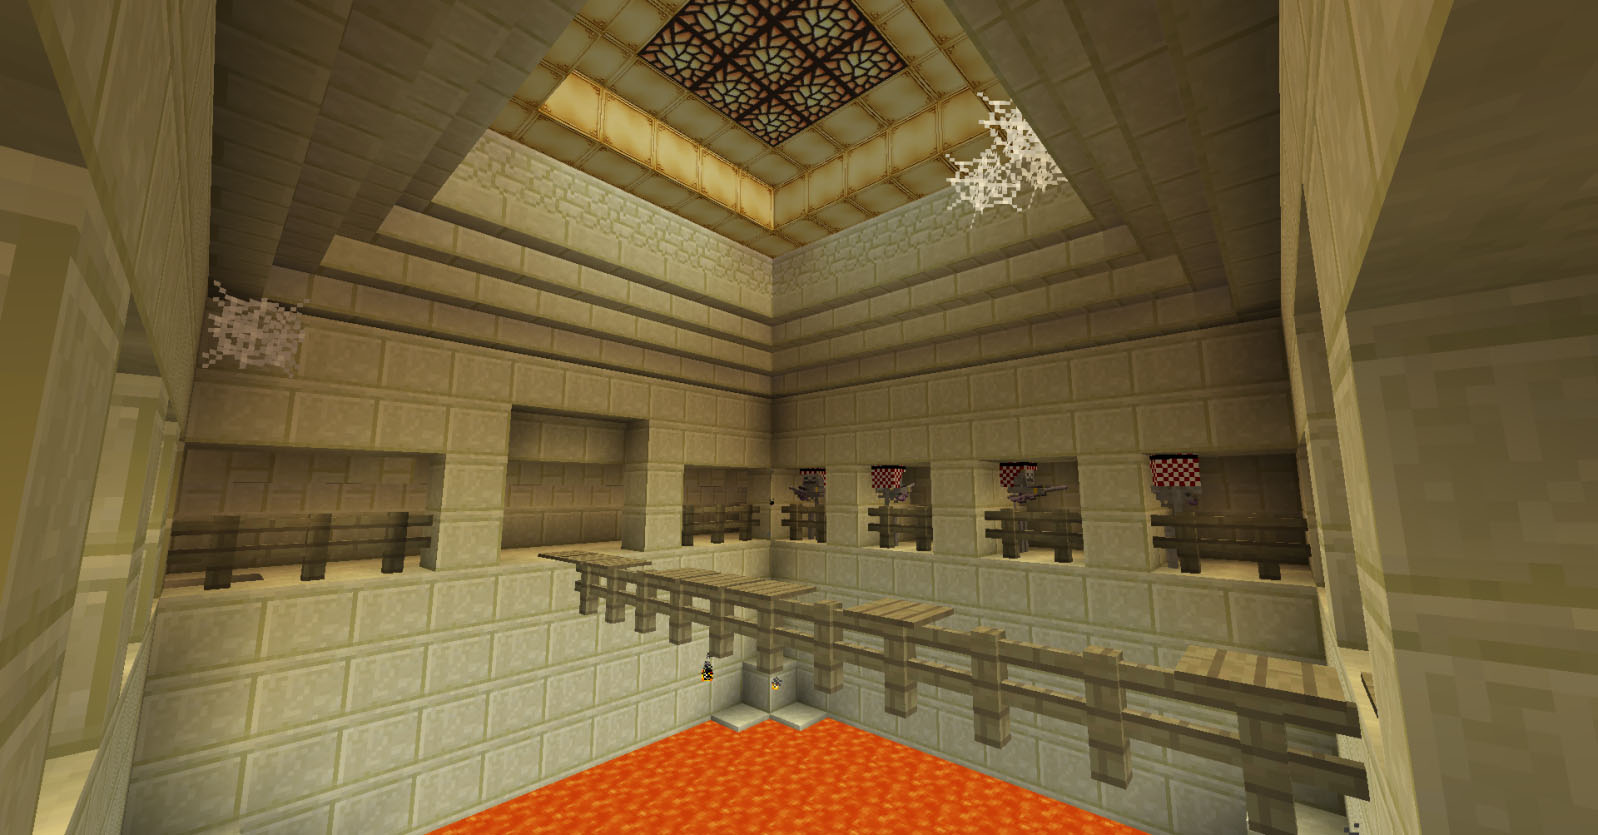 http://minecraft-forum.net/wp-content/uploads/2013/04/79e62__Lost-in-Pyramid-Map-3.jpg